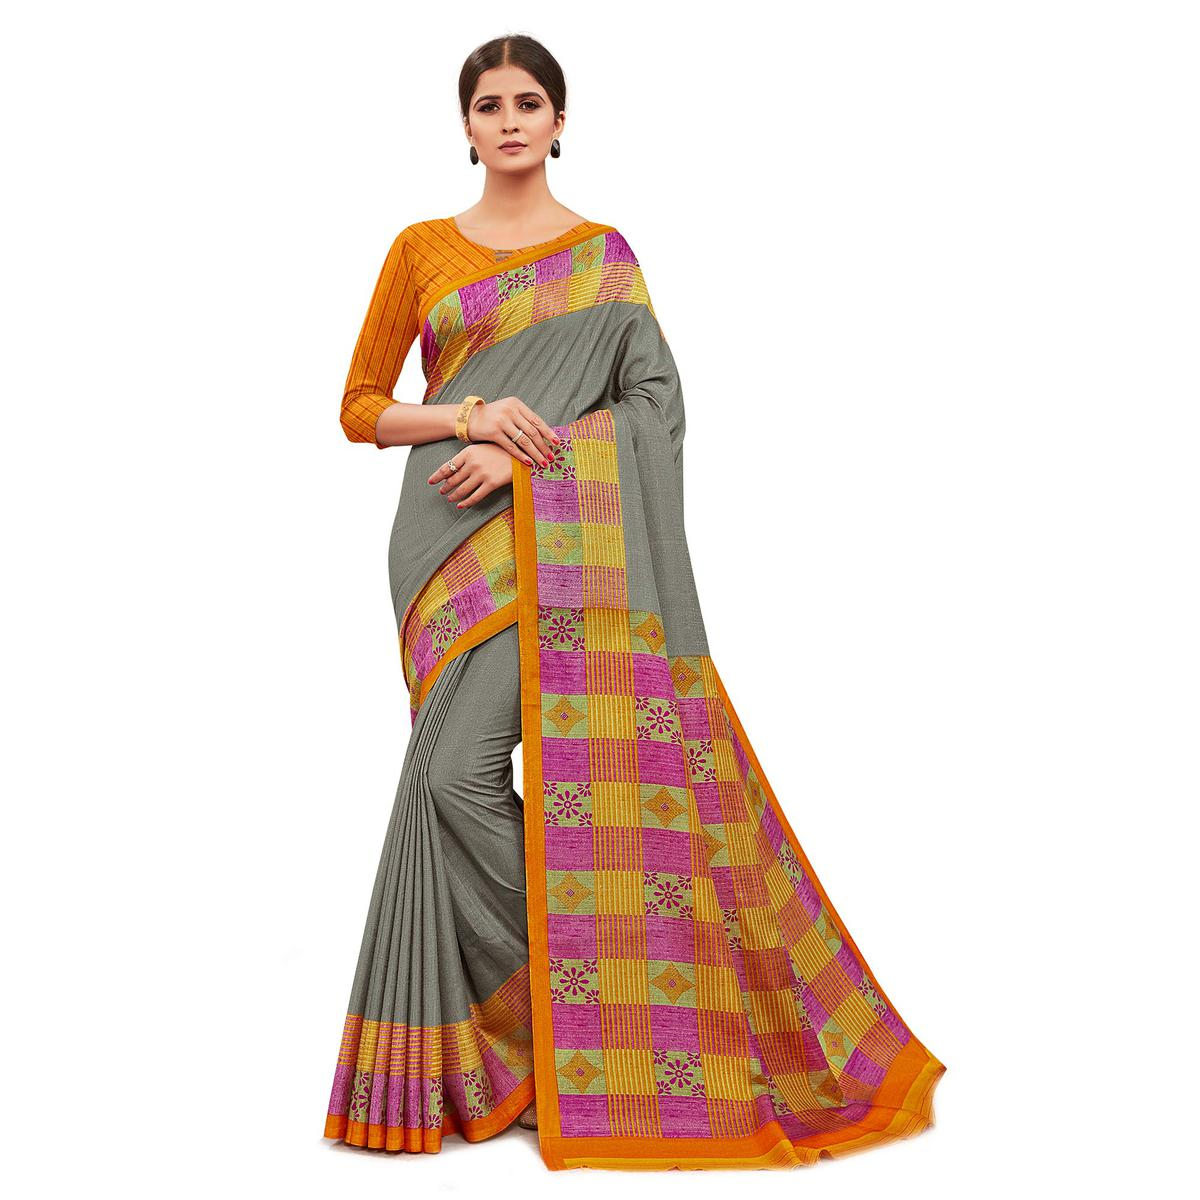 Classy Grey Colored Casual Wear Printed Manipuri Cotton Saree